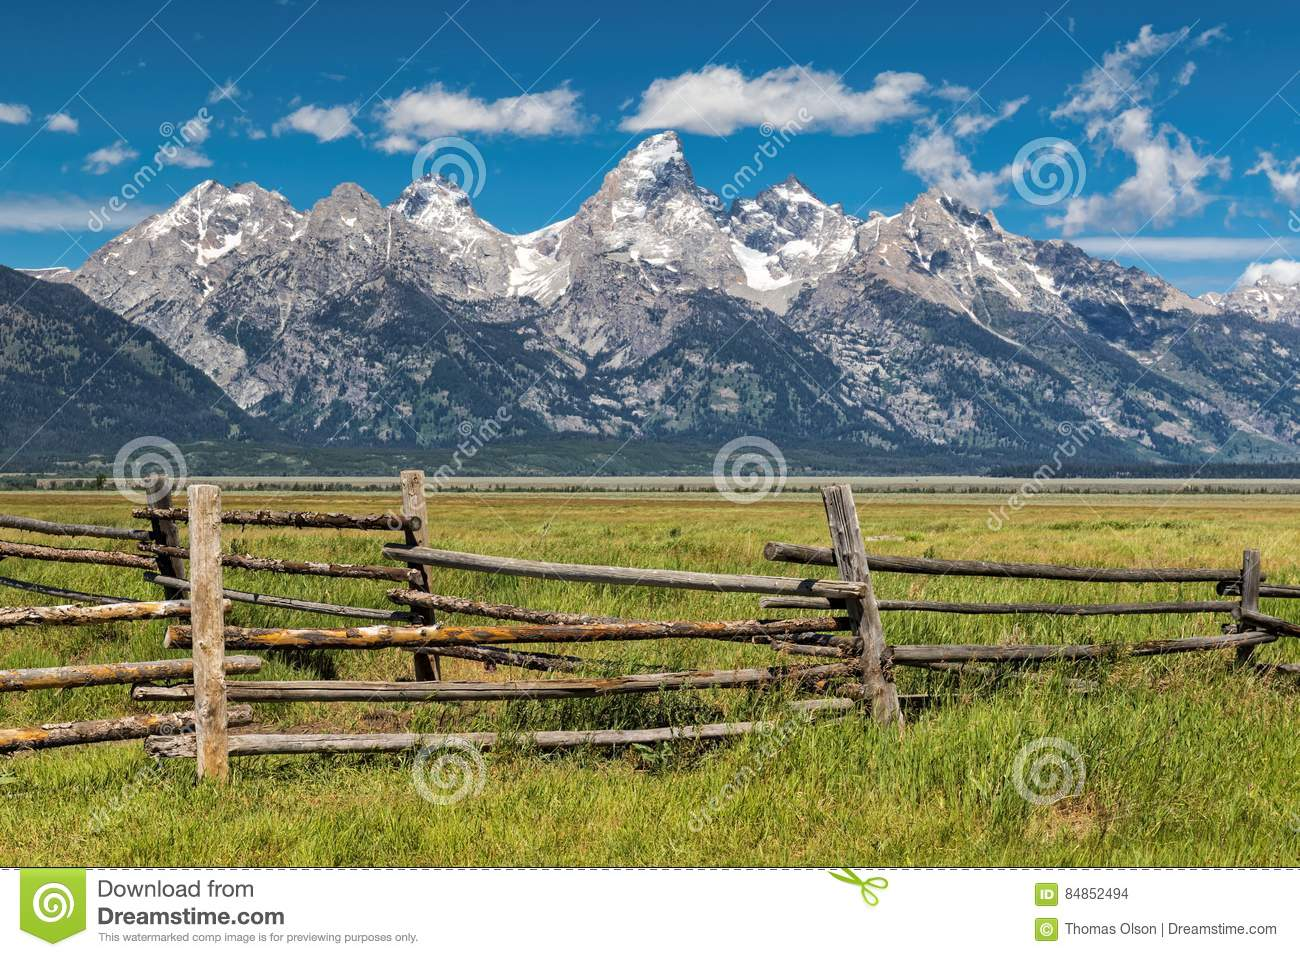 Grand Tetons and corral fence